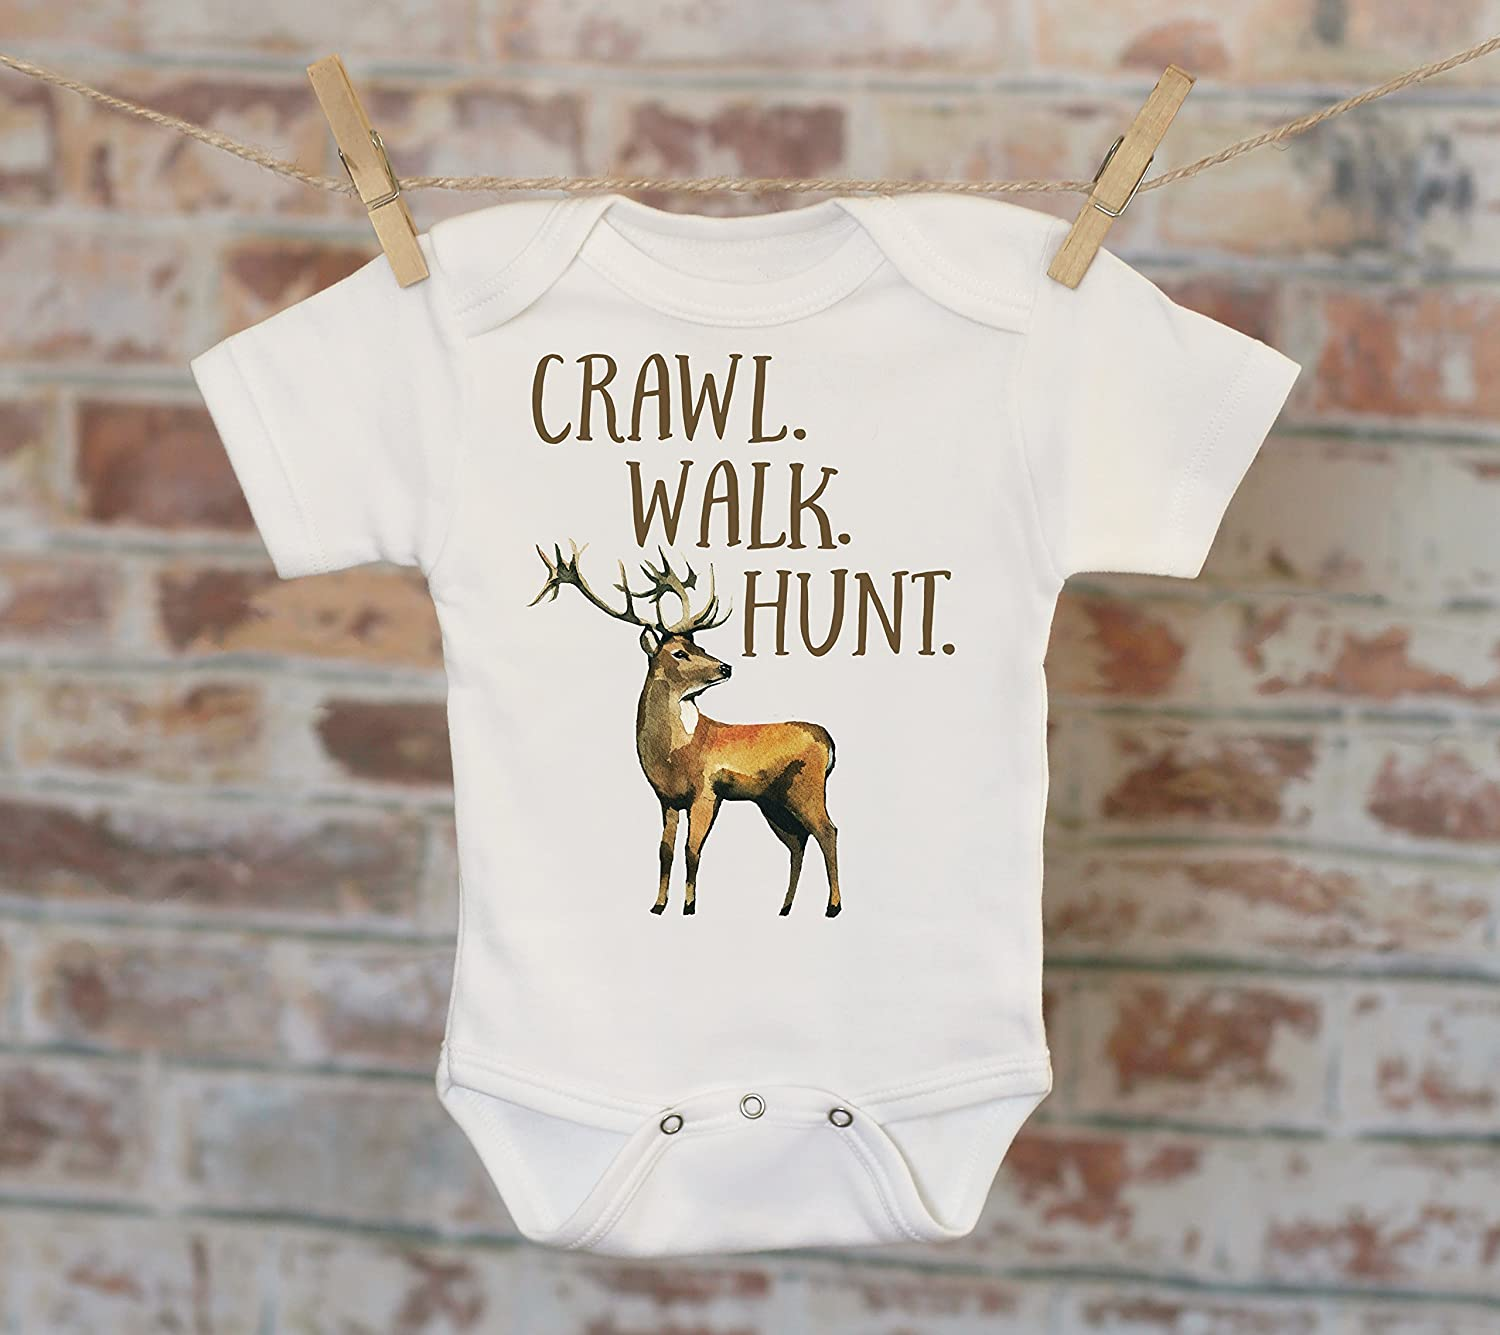 83cc39d61 Perfect for hunting season! **** Welcome to Witty and Bitty, your online  source for cute and fun baby and toddler clothes. Our Onesies ...